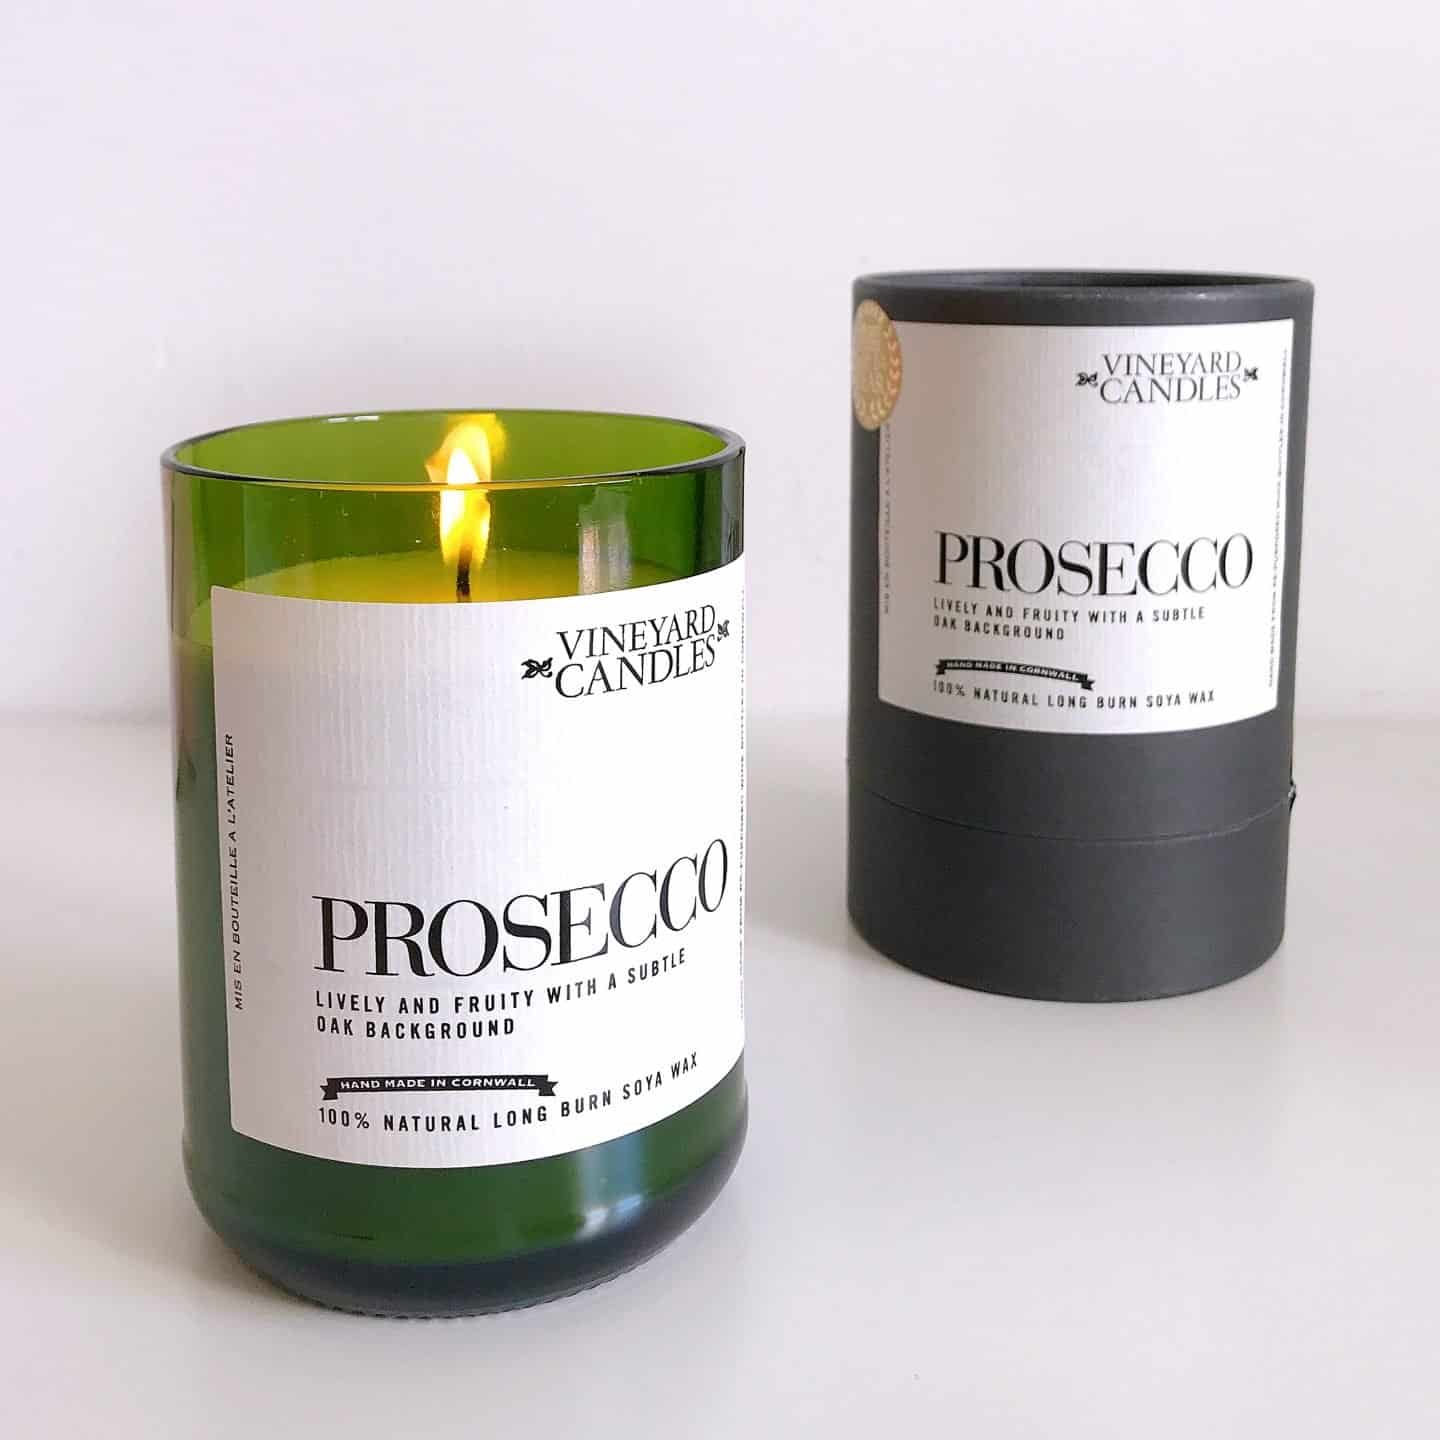 Vineyard Candles Prosecco natural soya wax candle makes an ideal Mother's Day gift idea